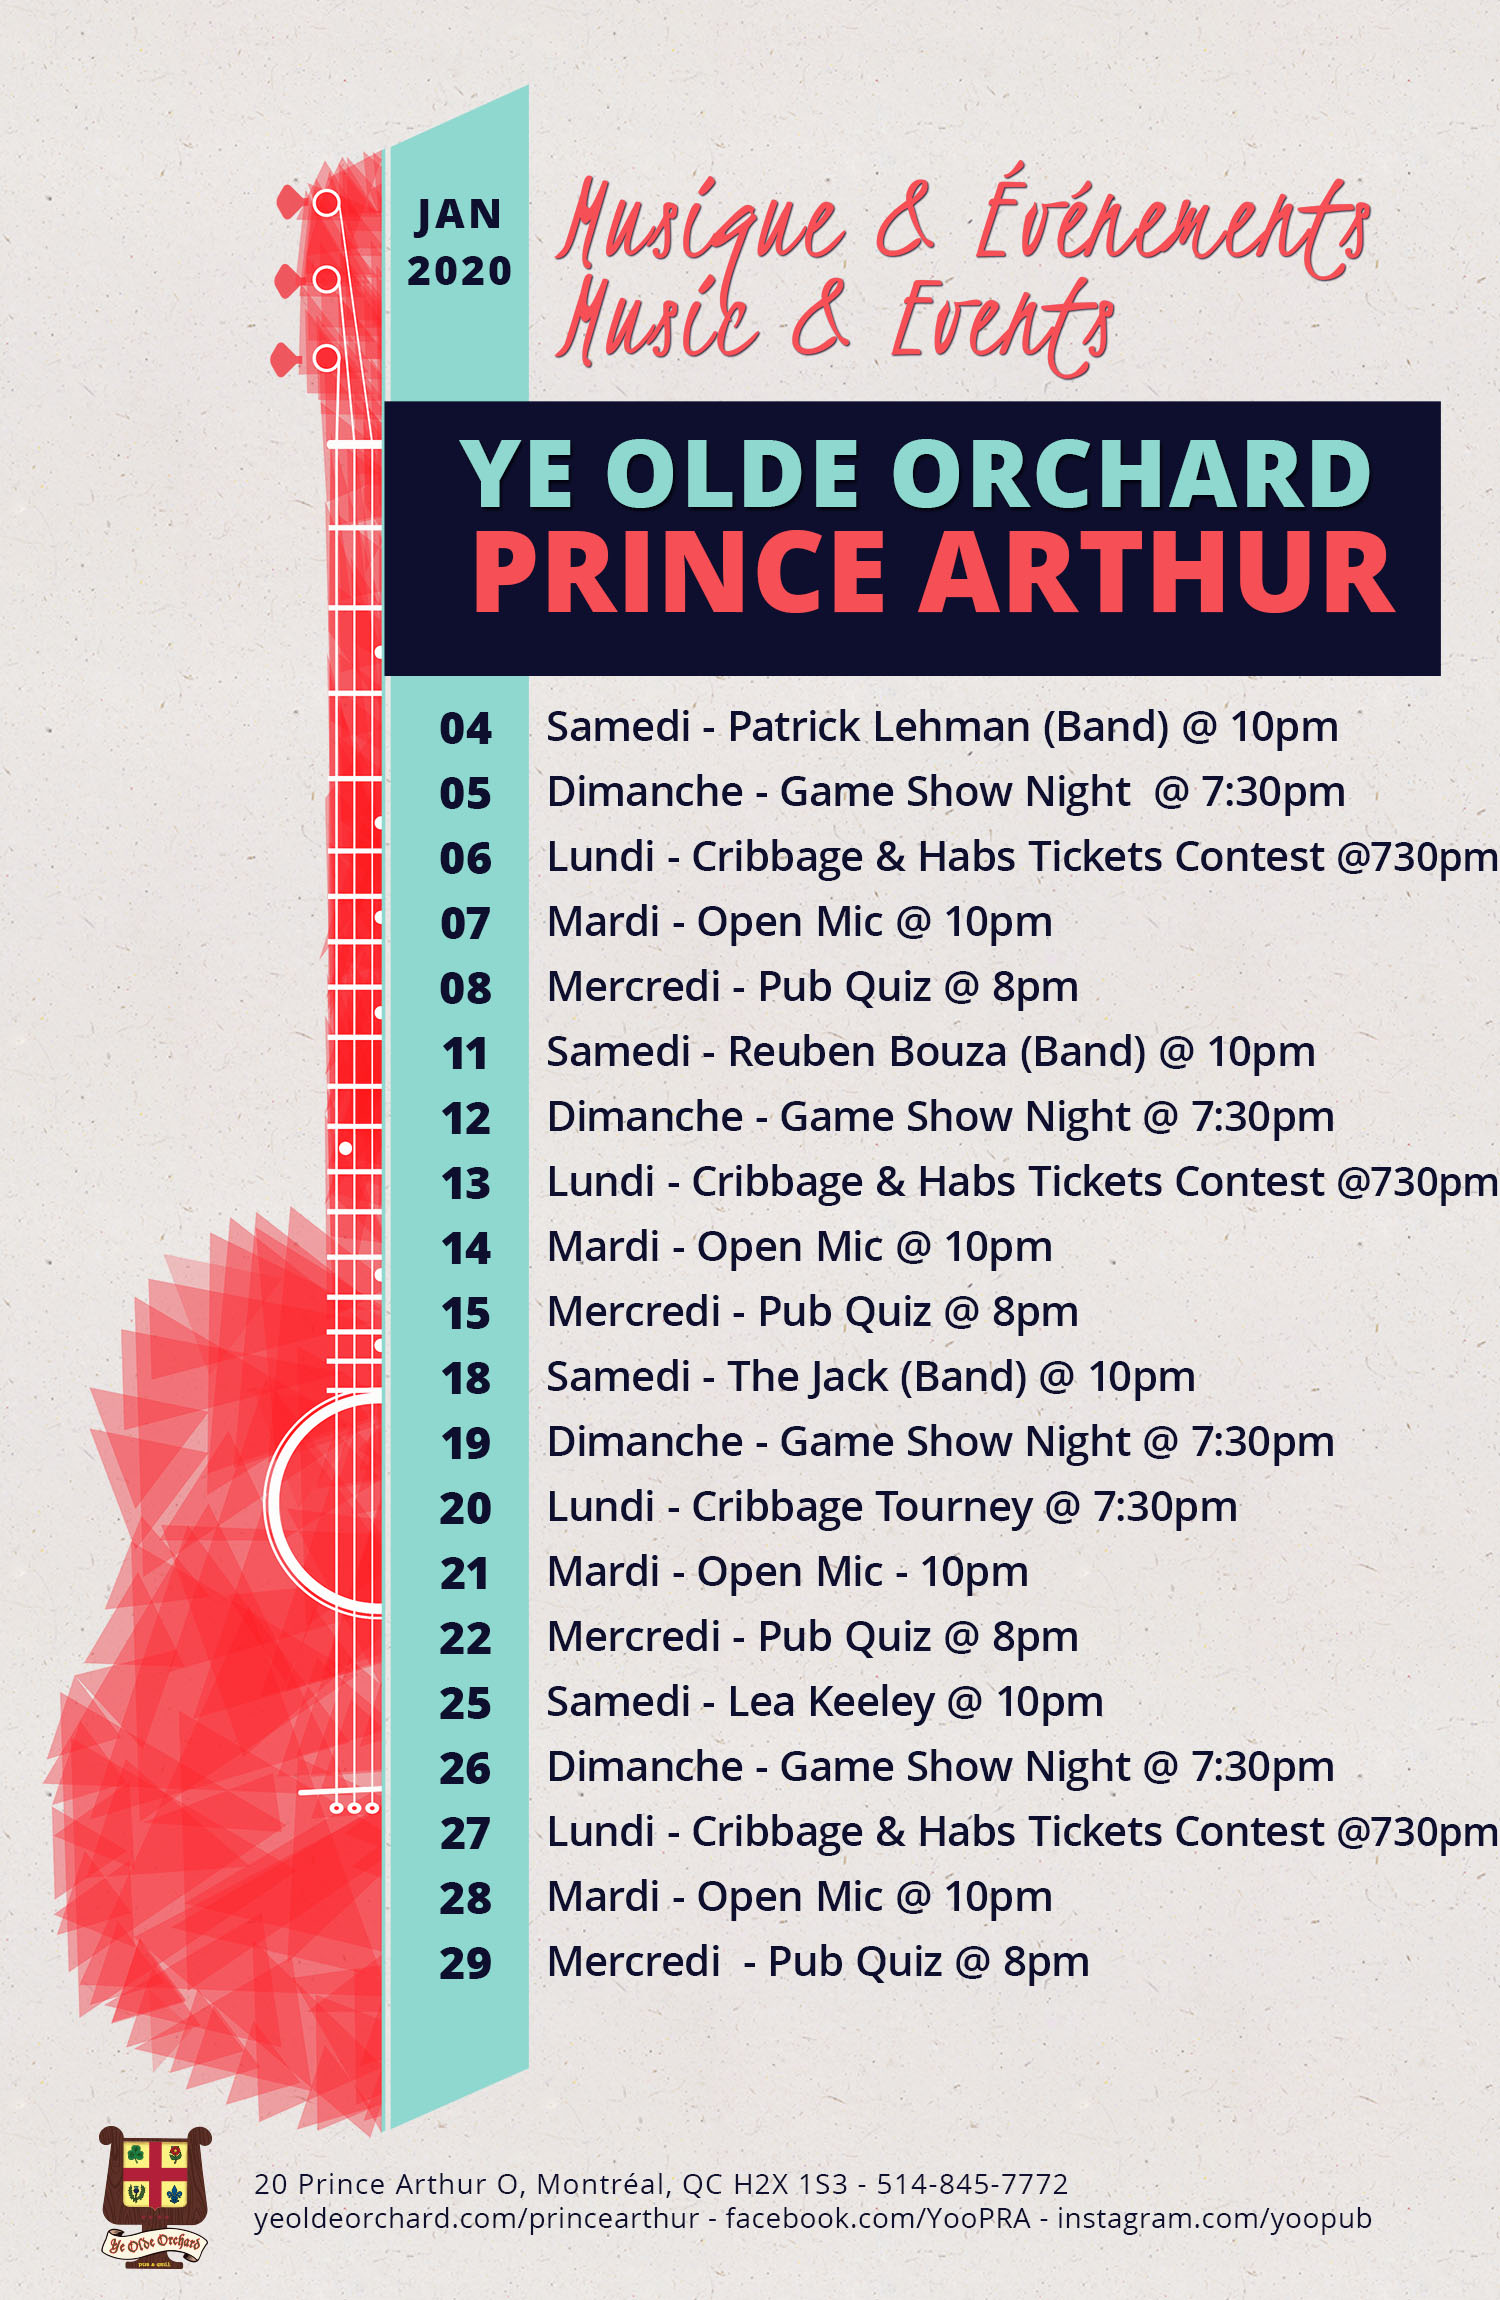 ye-olde-orchard-pub-music-and-events-calendar-prince-arthur-WEB-JAN